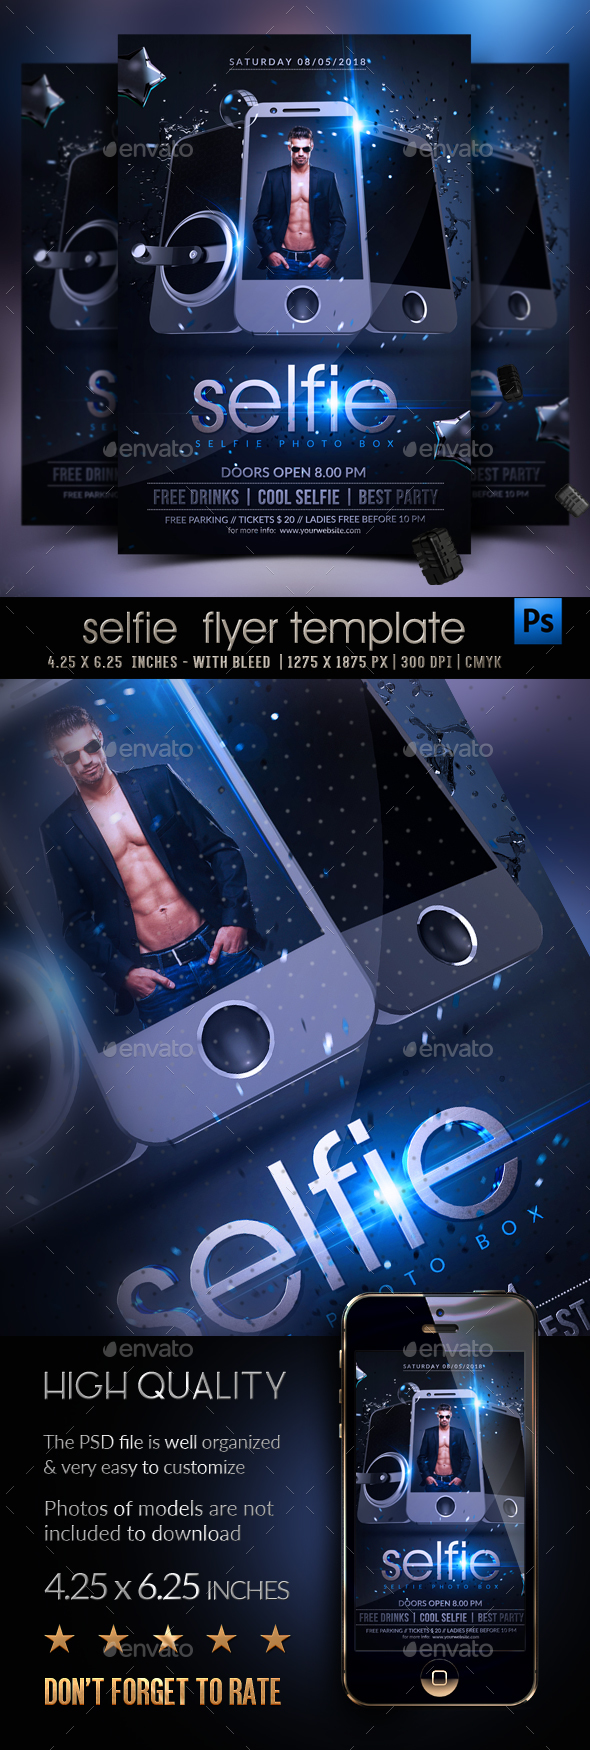 Selfie Party Flyer Template - Clubs & Parties Events